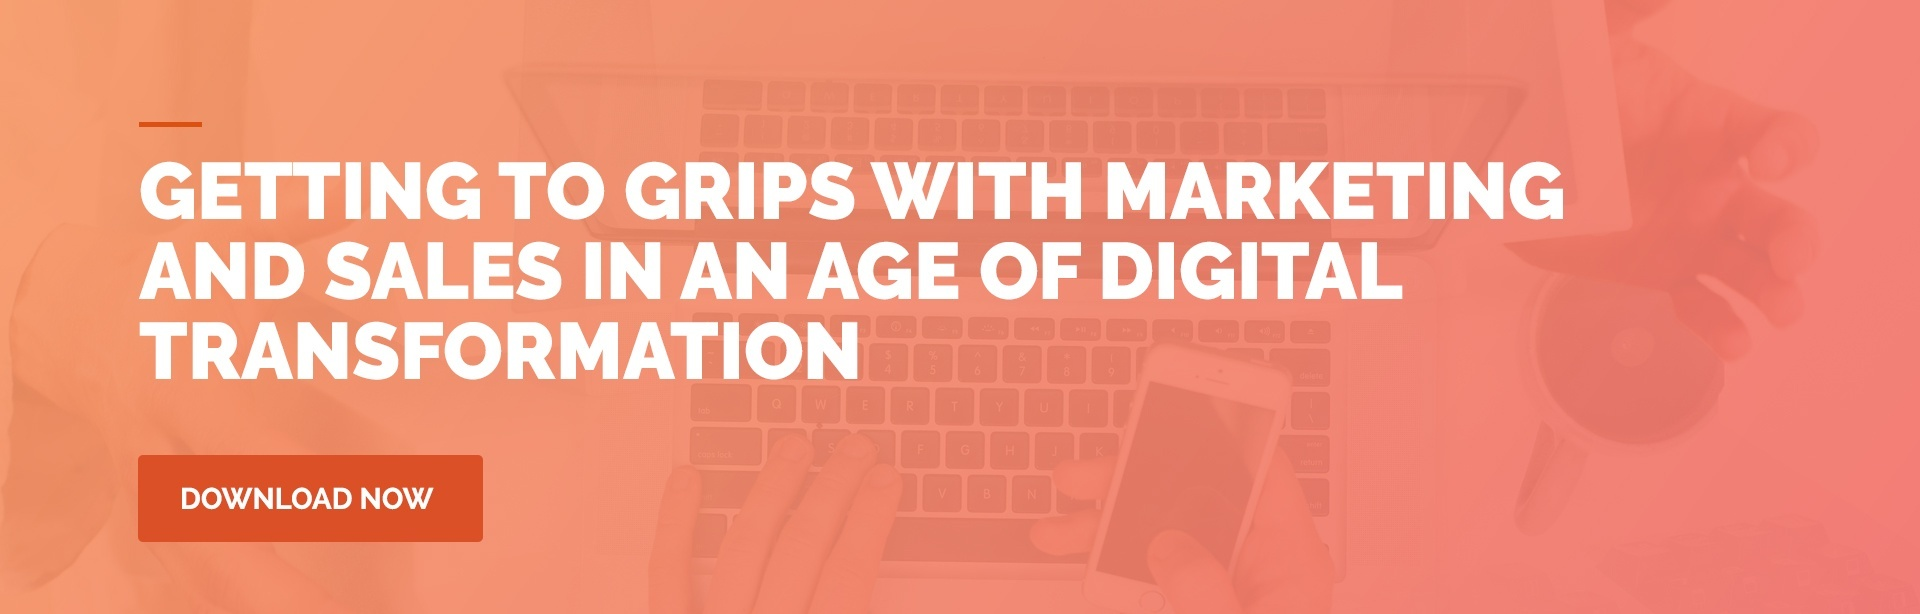 Getting to Grips - Digital Transformation eBook - Blog CTA